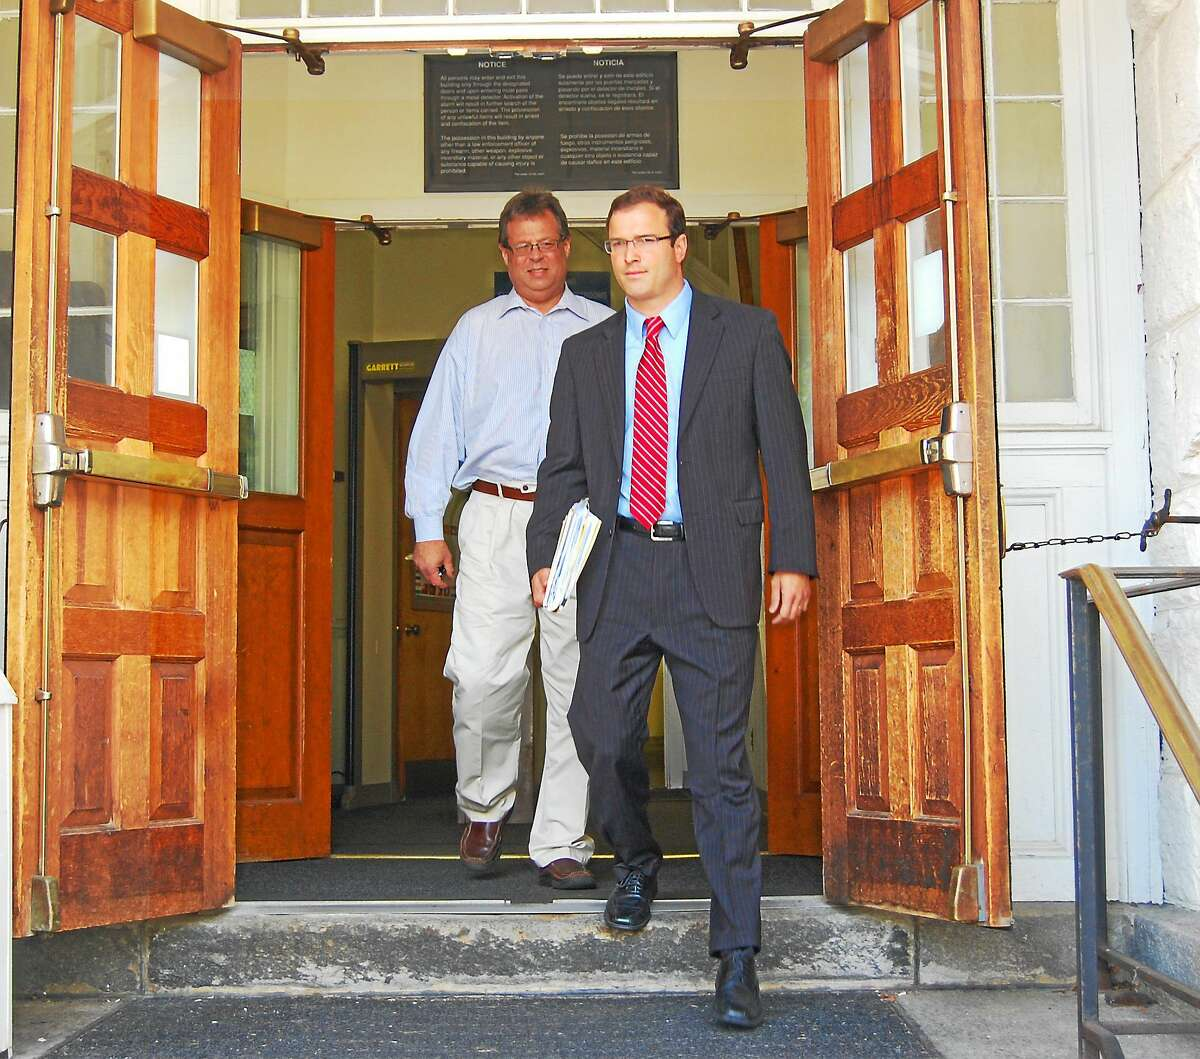 Henry Centrella walks behind his attorney, Robert Dwyer, as they exit Litchfield Superior Court in July 2013.